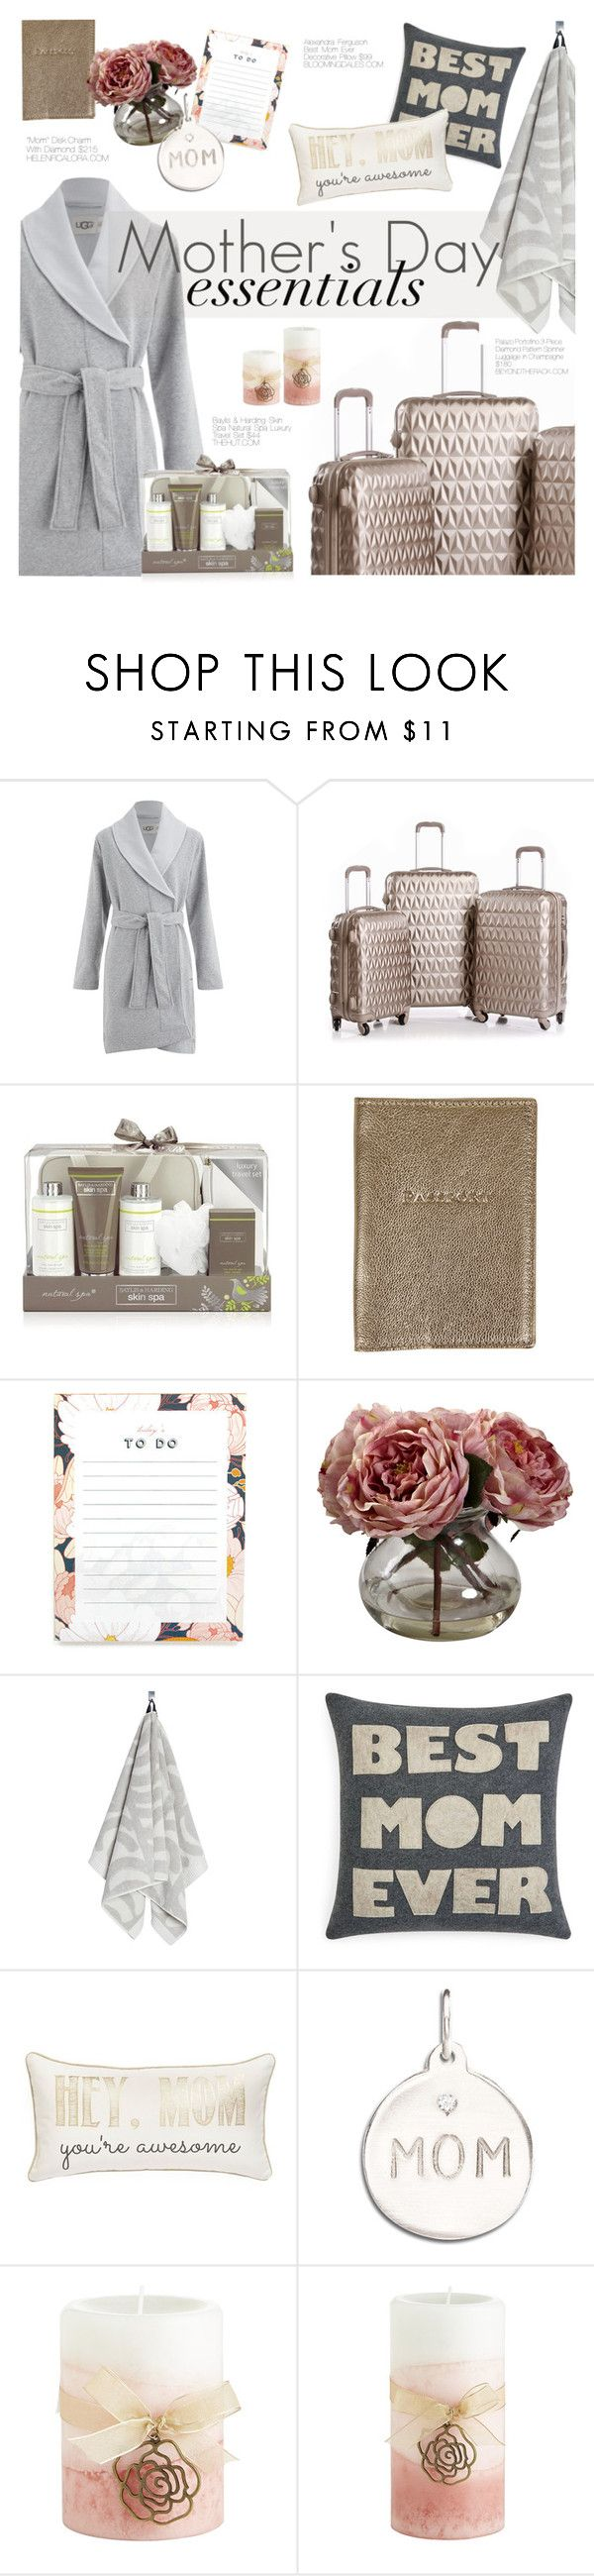 """MD Gift Guide"" by happilyjynxed ❤ liked on Polyvore featuring beauty, UGG Australia, Palazo Portofino, Baylis & Harding, Amara, Nearly Natural, Marimekko, Alexandra Ferguson, Levtex and Pier 1 Imports"